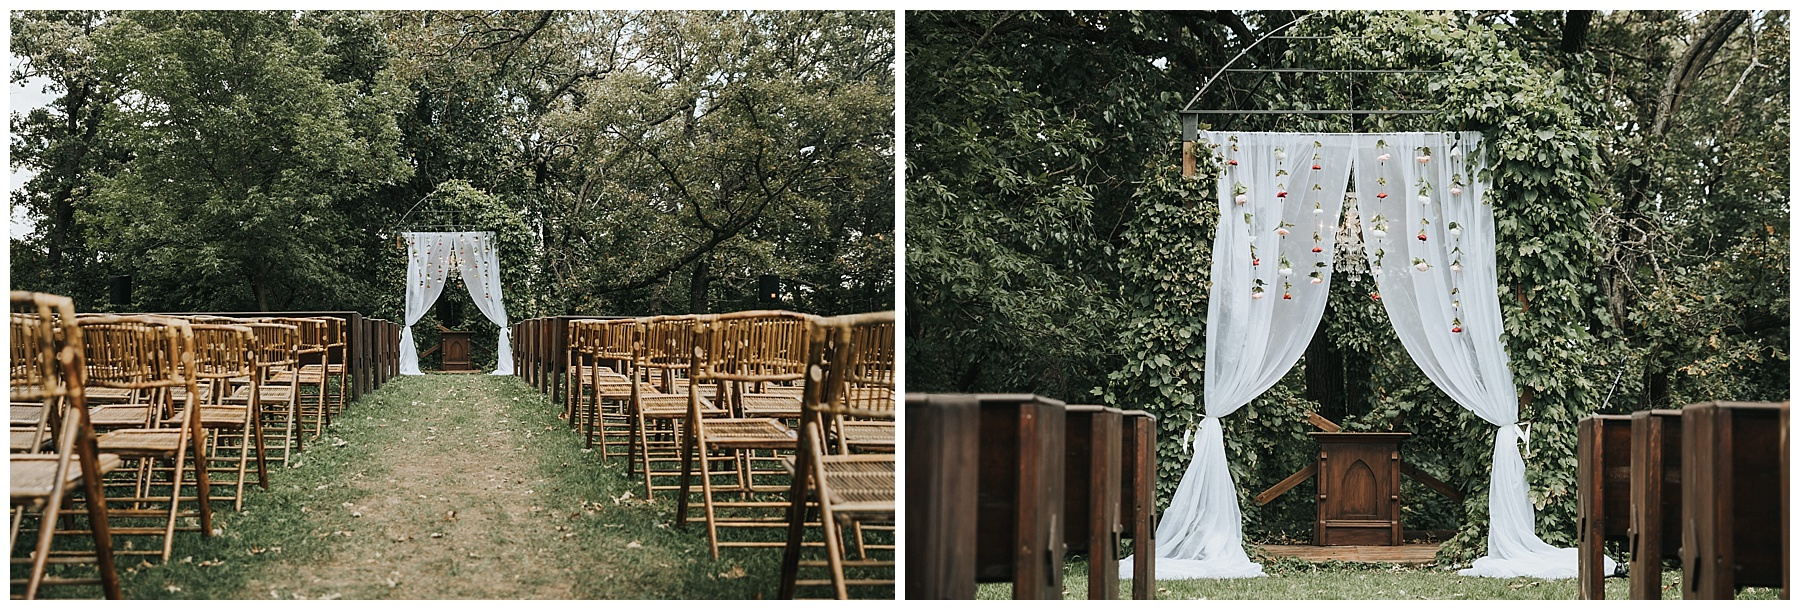 Outdoor ceremony arch at Diamond Oak Events